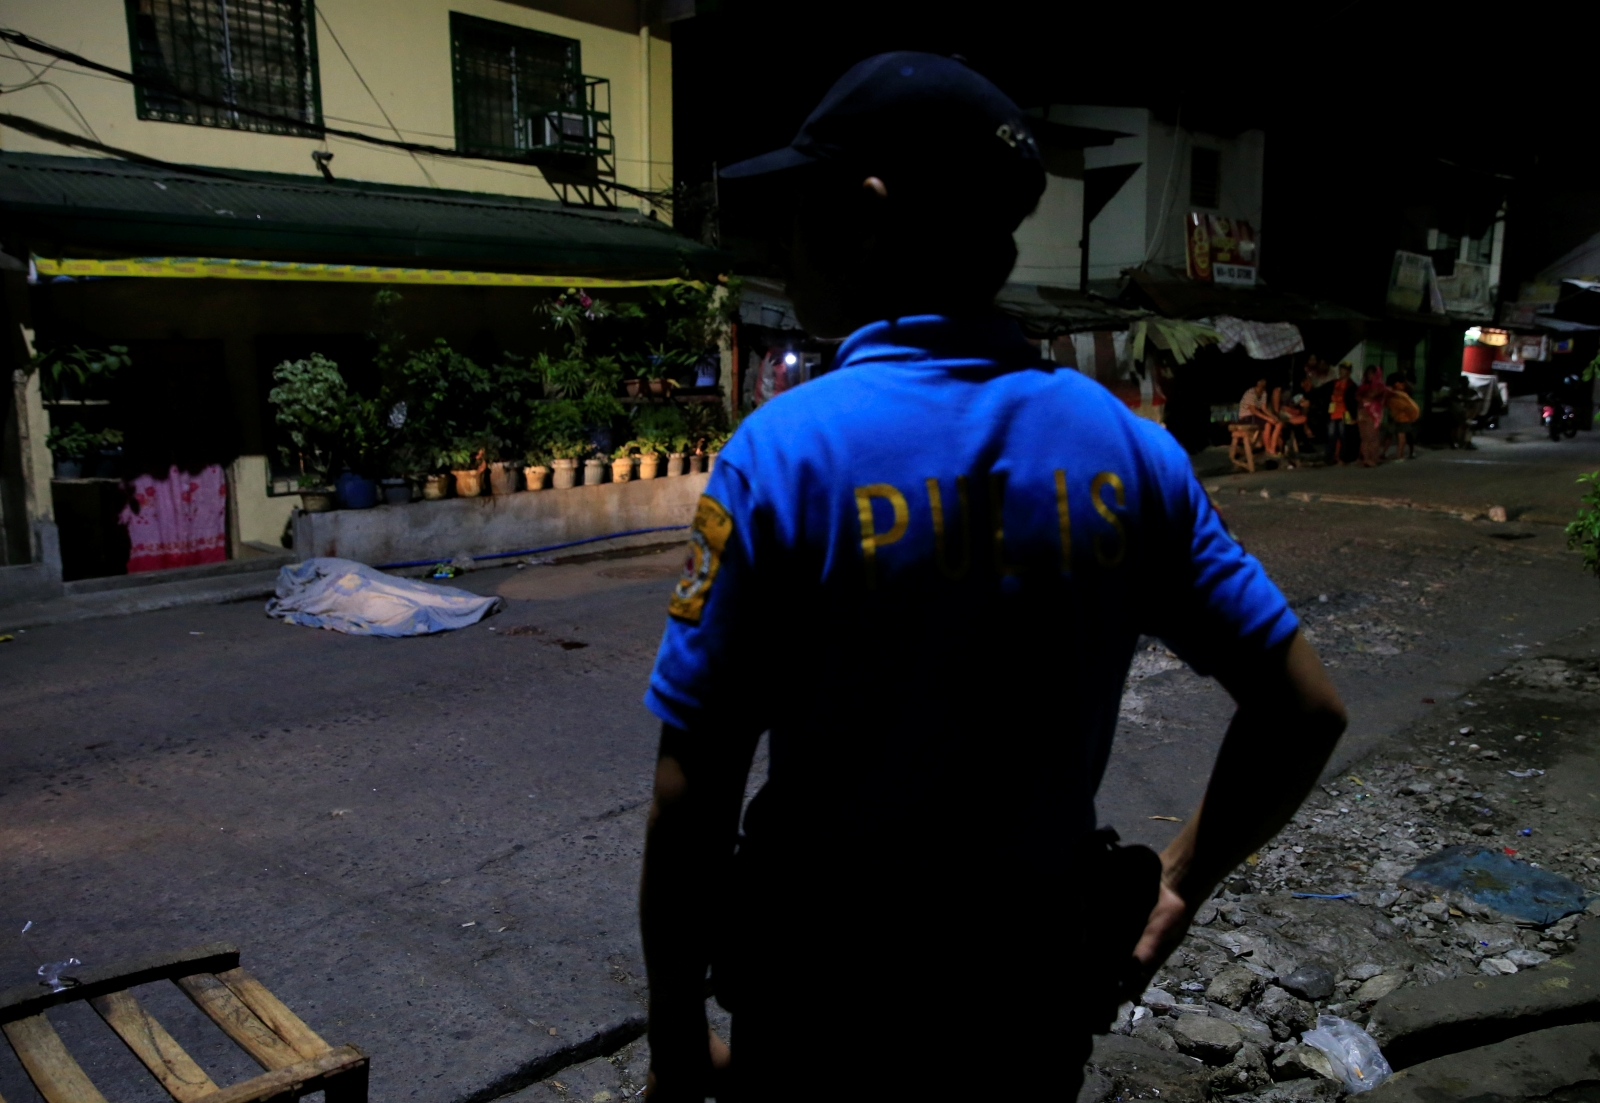 Philippines: Police plant evidence to justify drug war killings - HRW